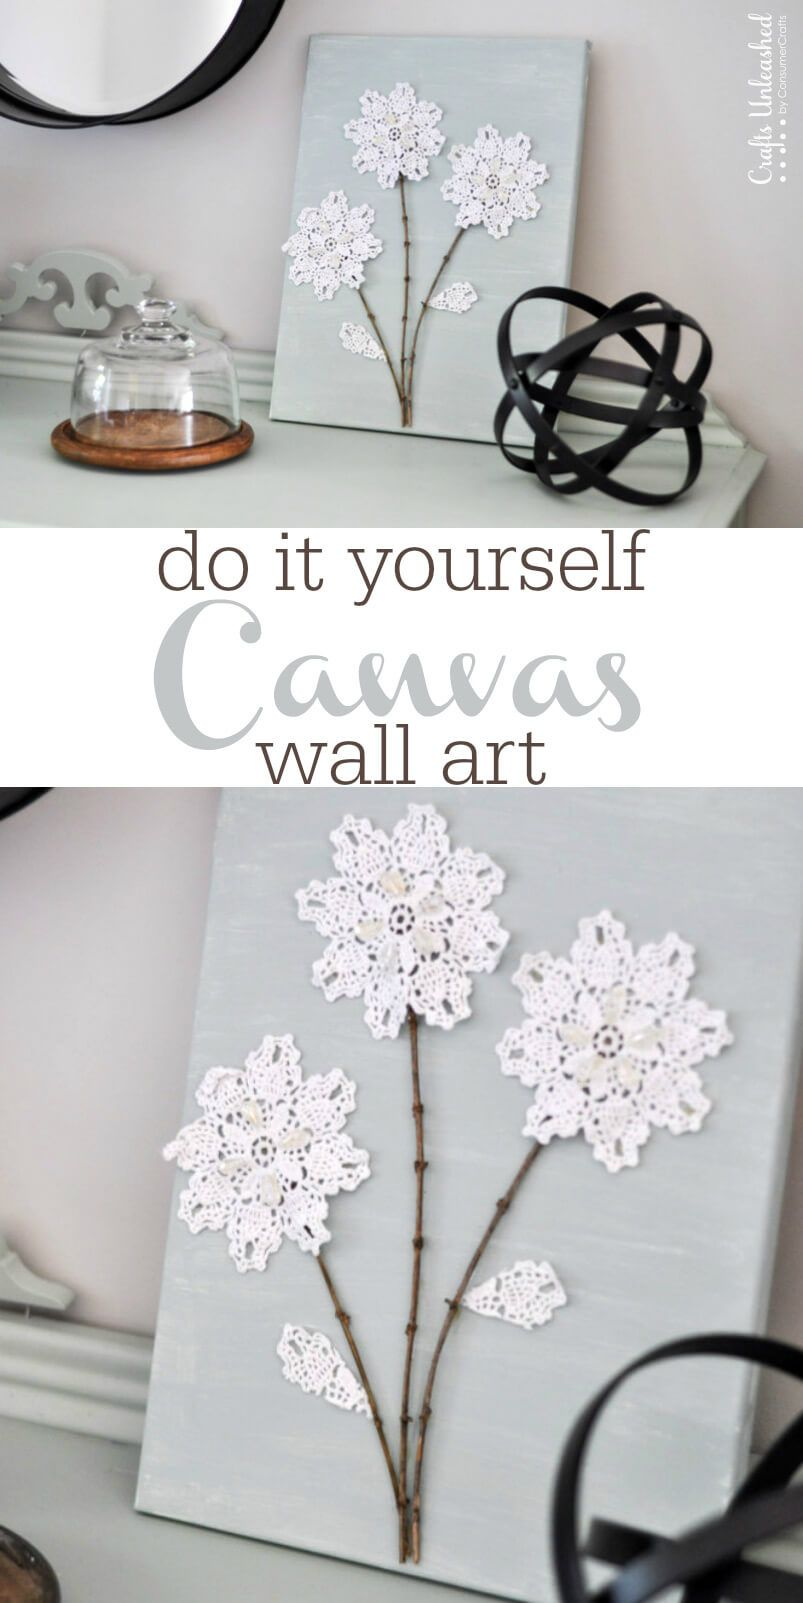 36 Easy Diy Wall Art Ideas To Make Your Home More Stylish Shabby Chic Diy Diy Canvas Wall Art Shabby Chic Flowers